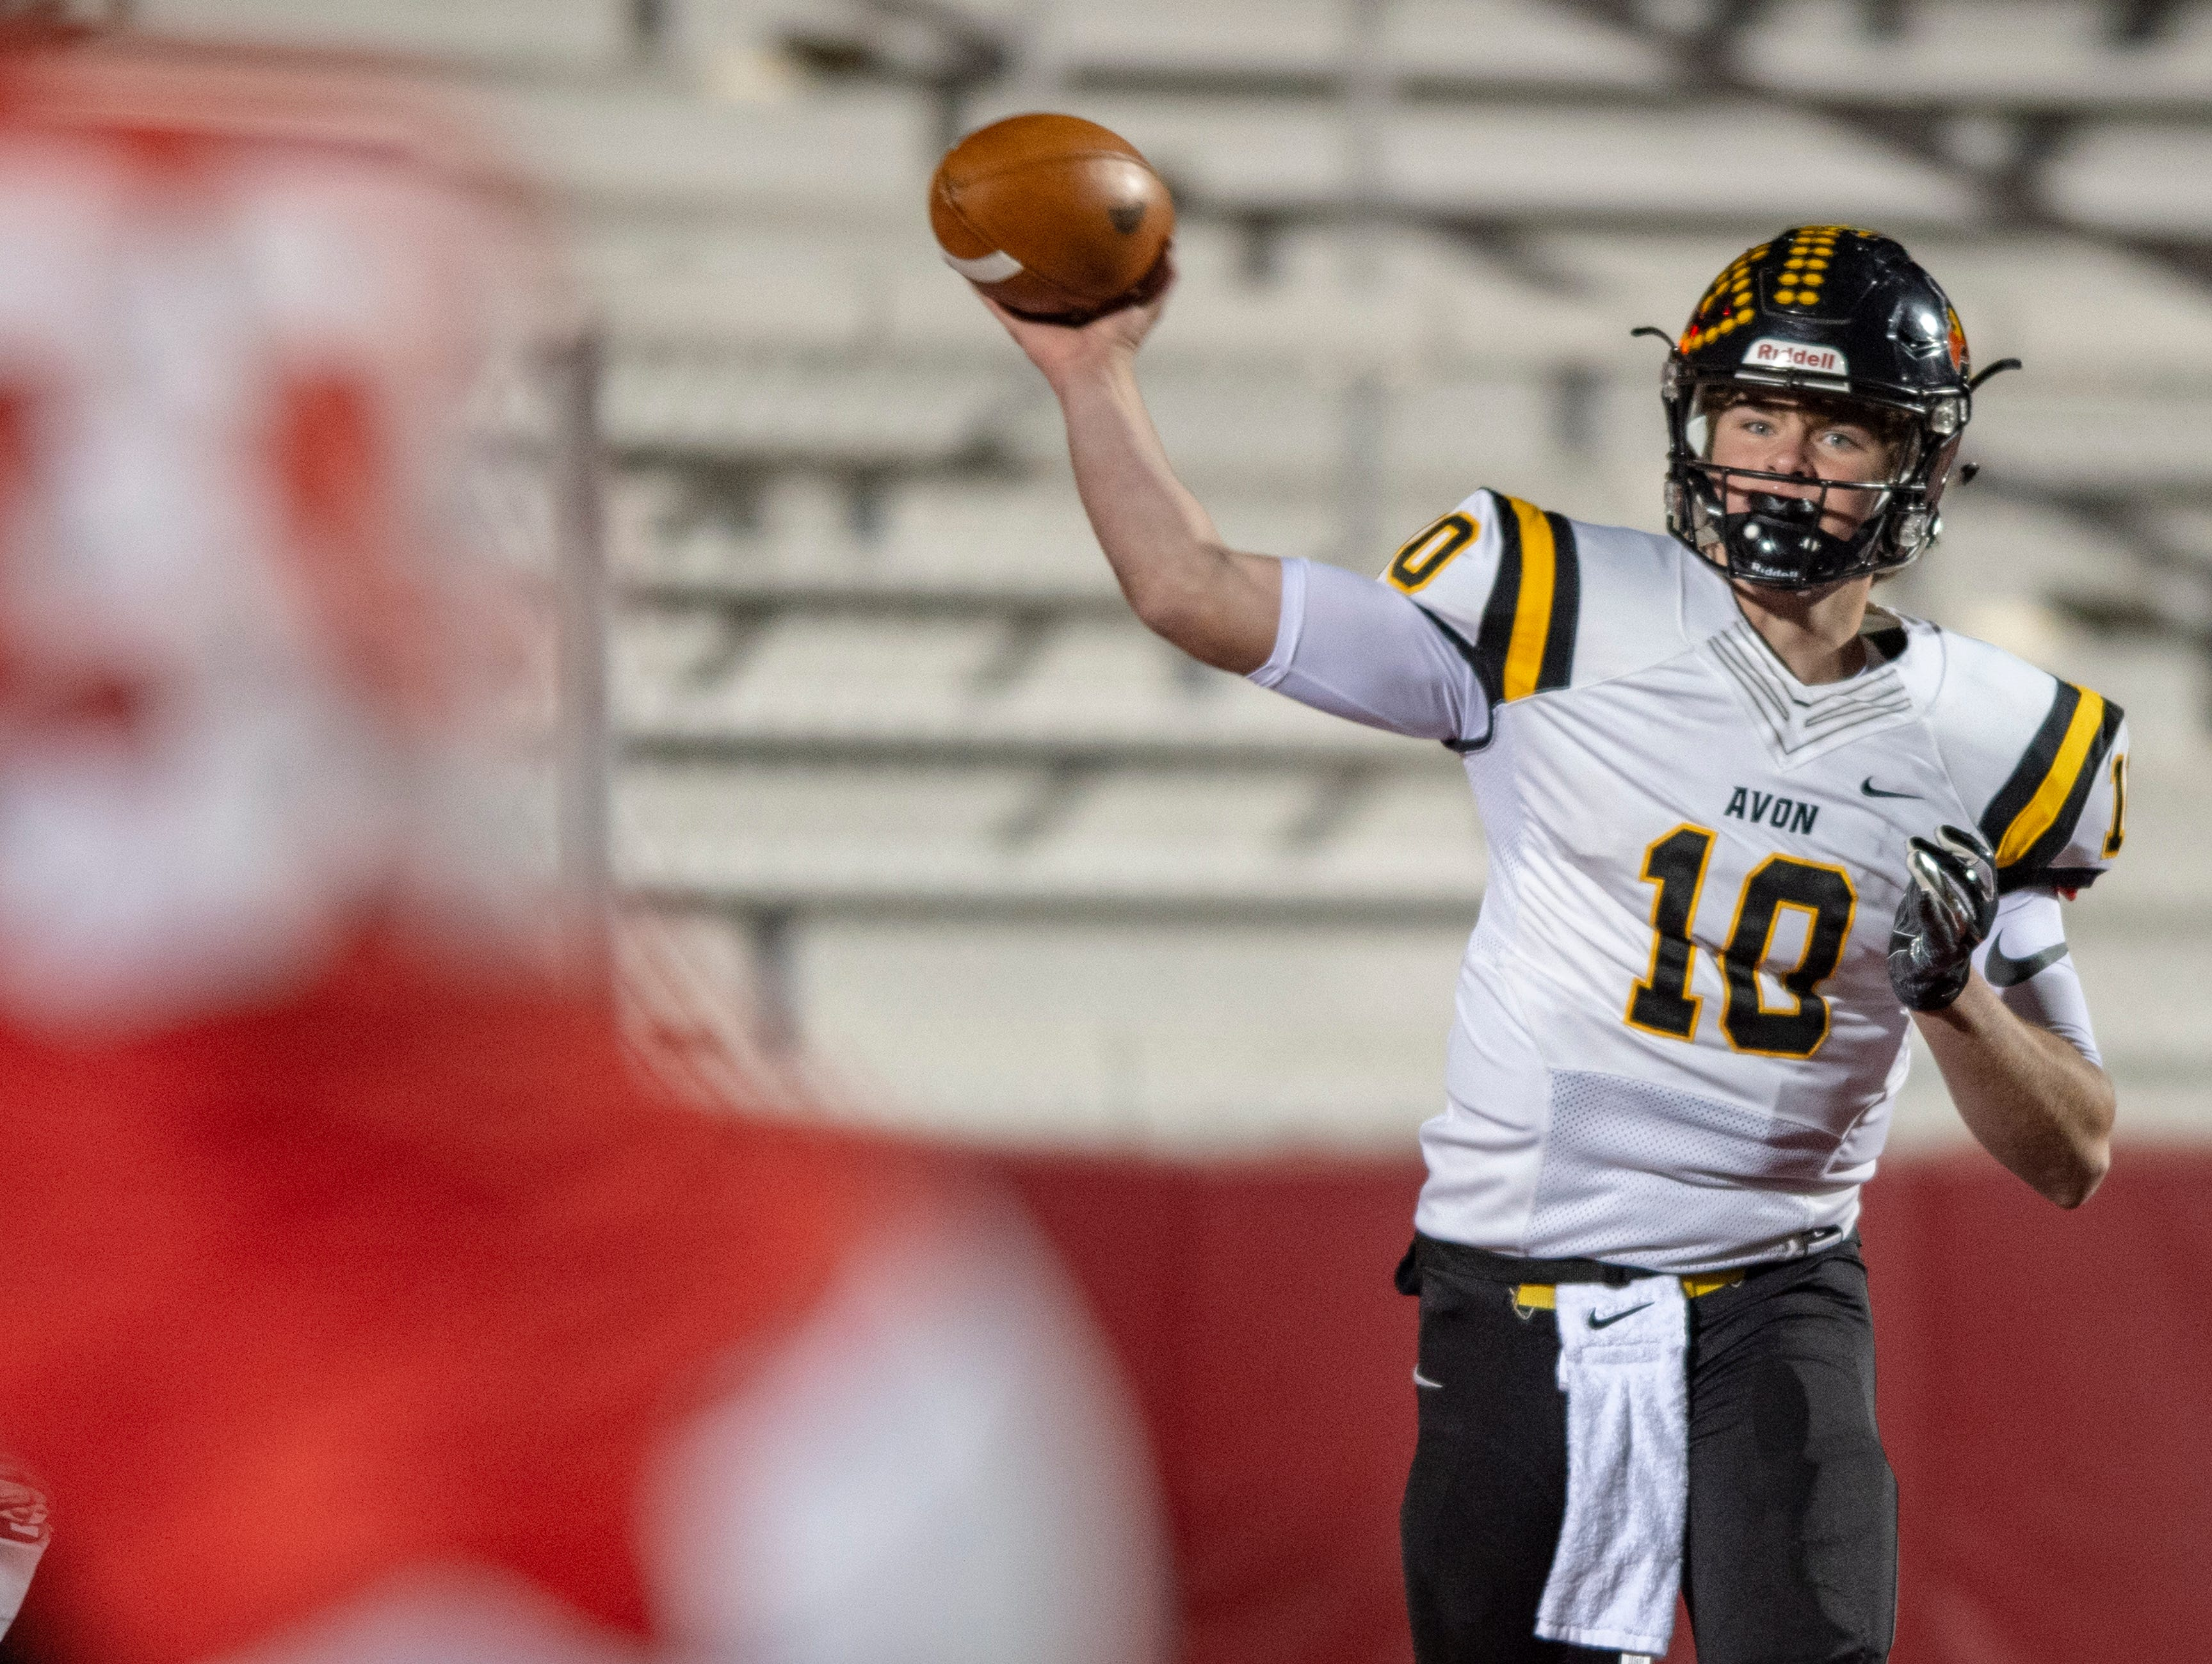 Avon High School sophomore Henry Hesson (10) throws the ball out of the backfield during the first half of action. Center Grove High School hosted Avon High School in an IHSAA Class 6A Regional Championship varsity football game, Friday, Nov. 9, 2018.